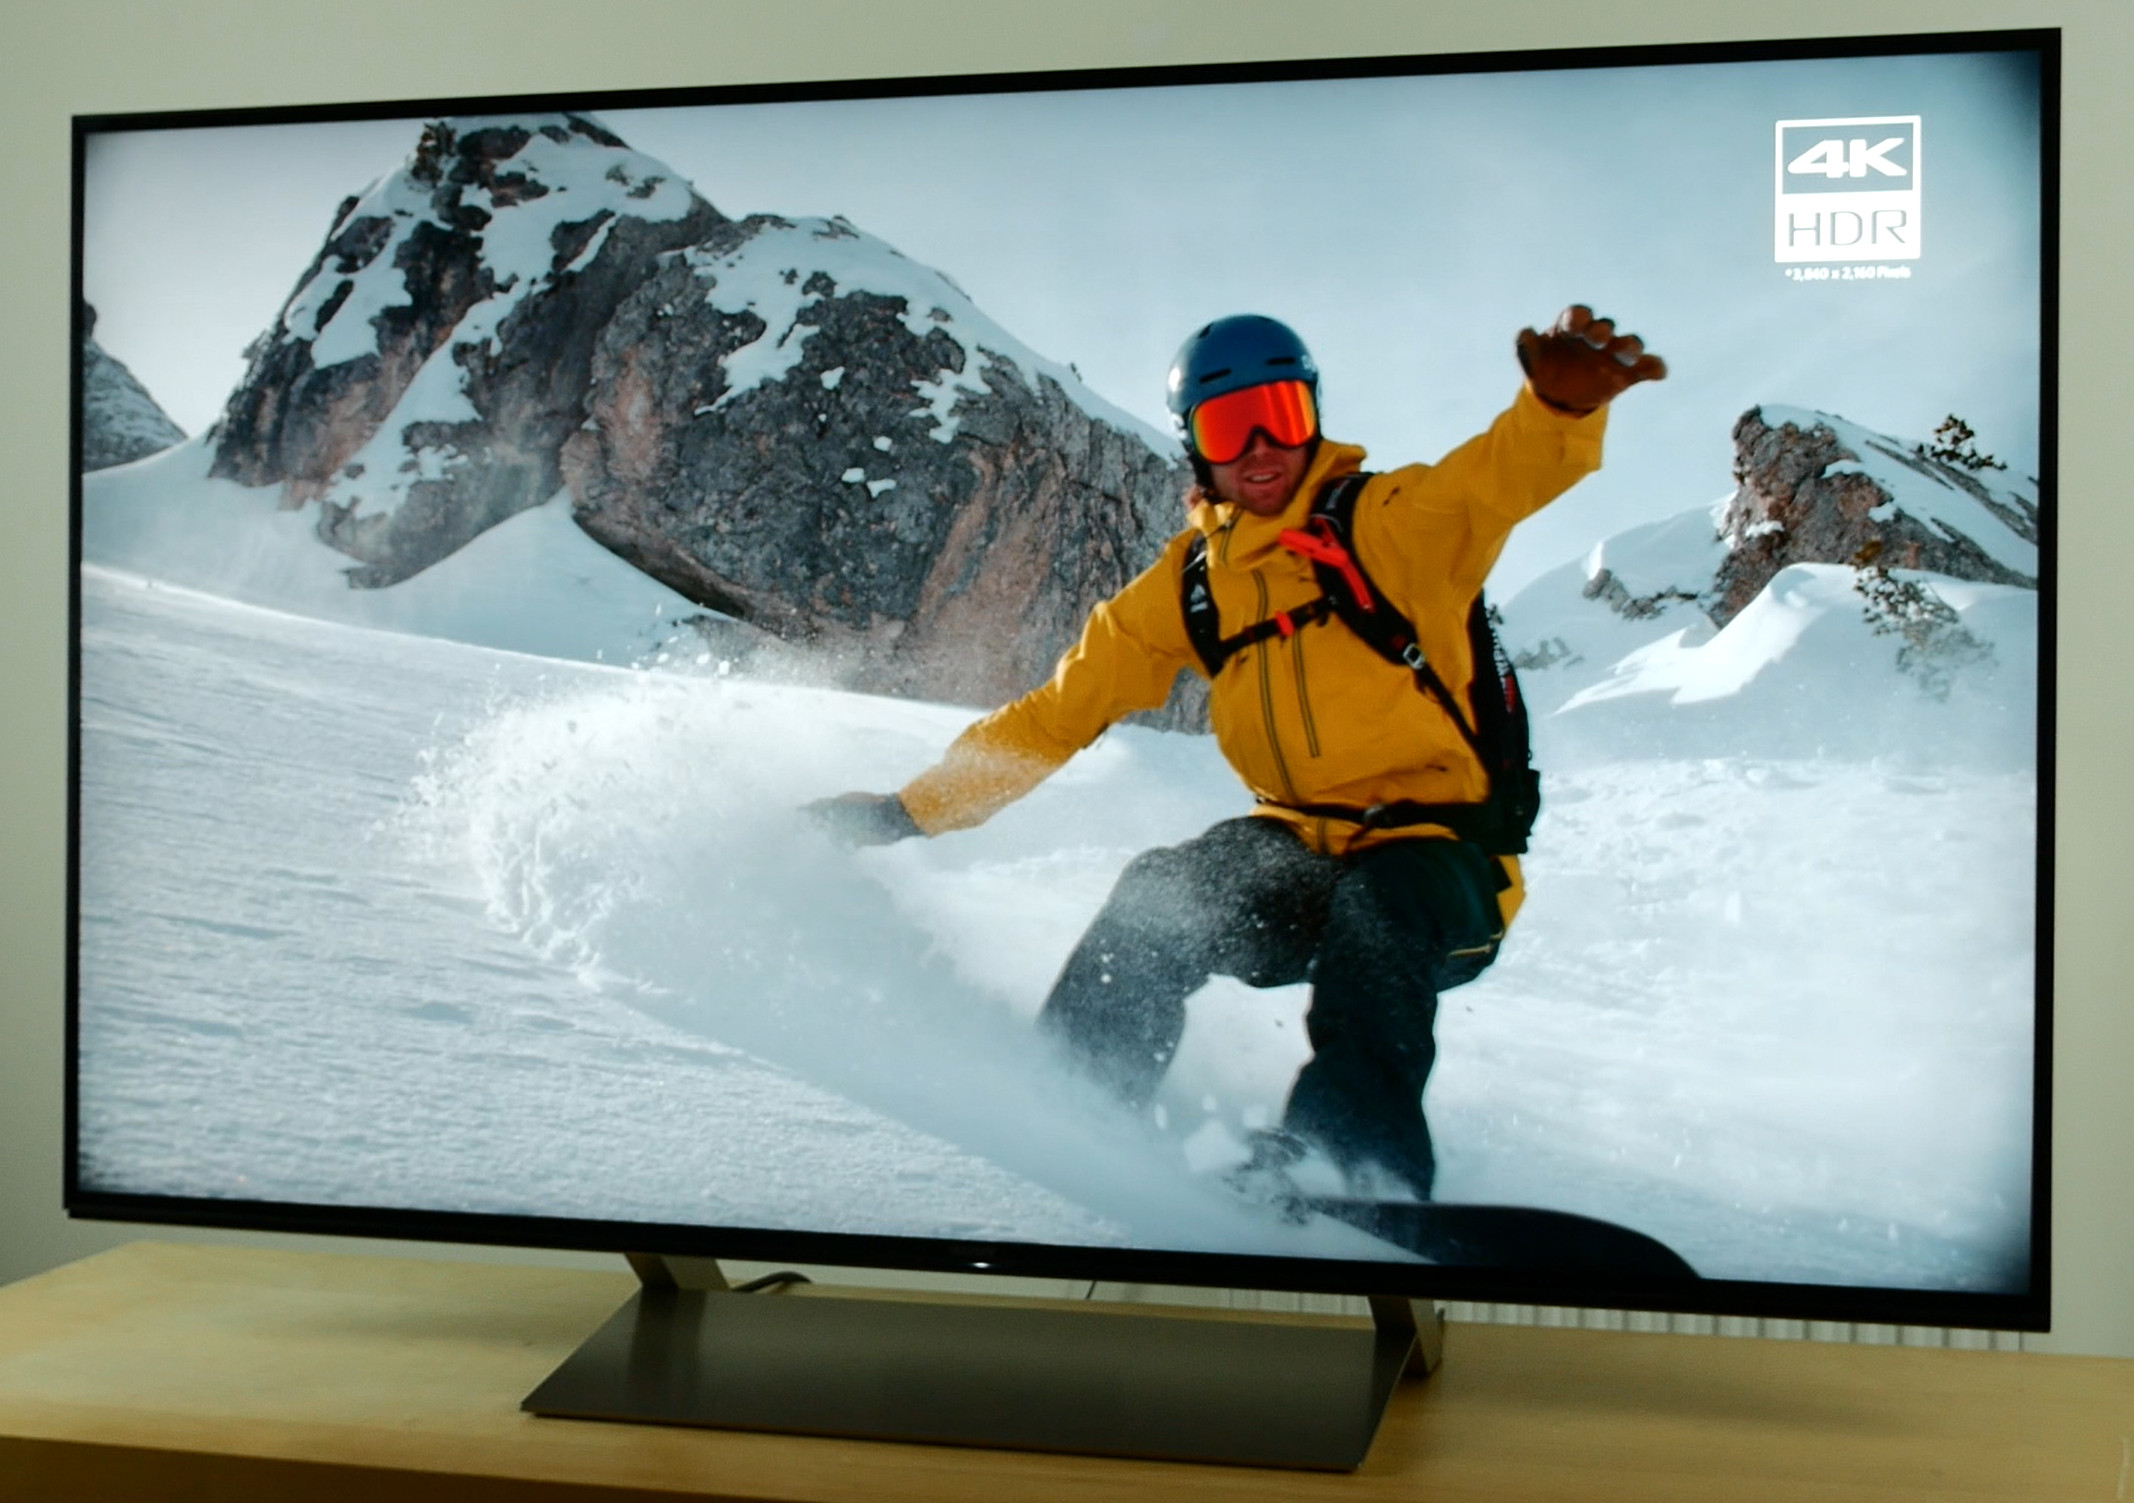 Sony KD-55XE9305 (XE93) 4K HDR TV Review